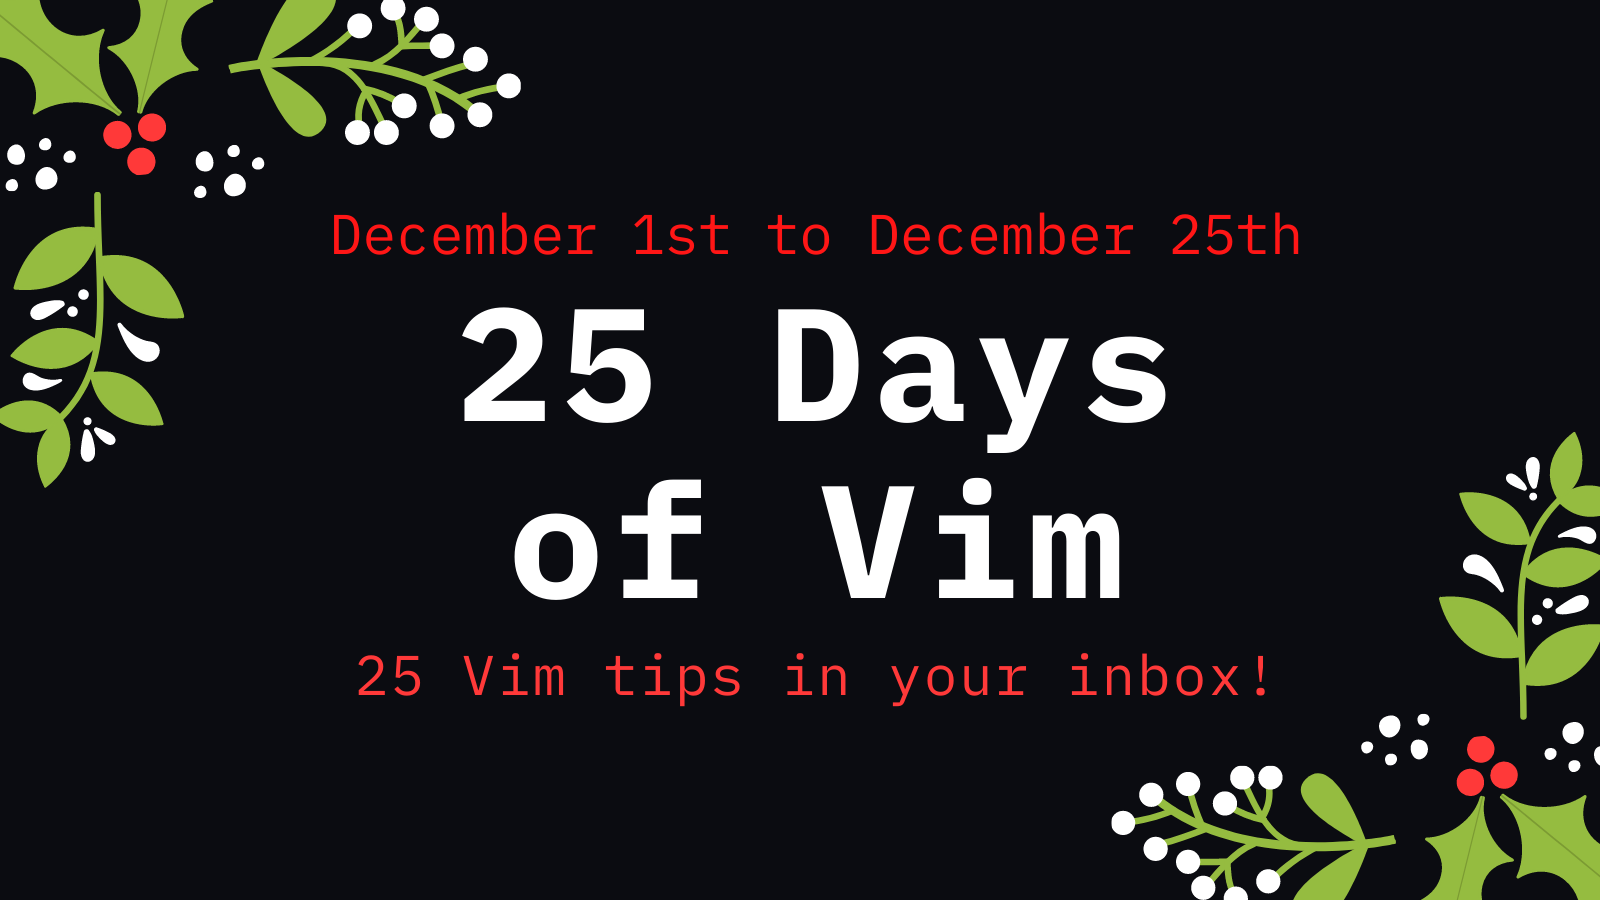 25 Days of Vim